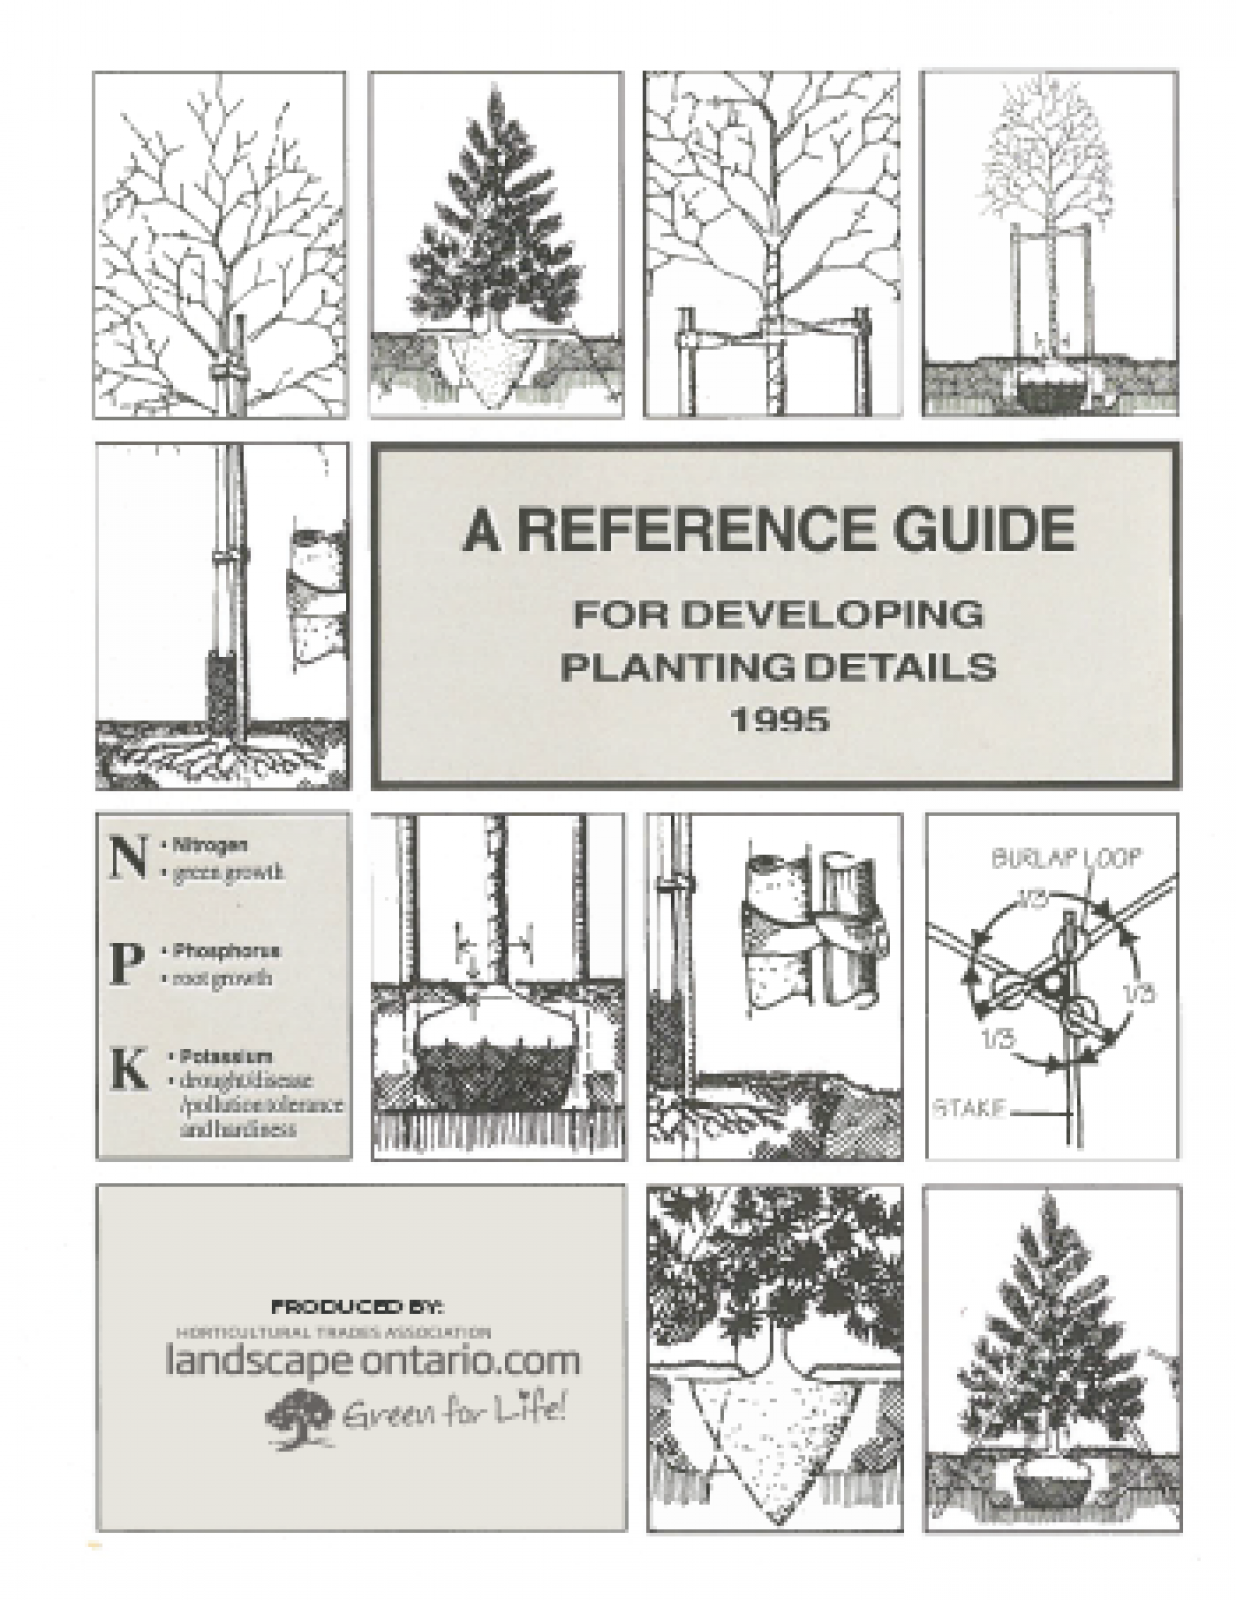 A Reference Guide for Developing Plant Ideas 1995